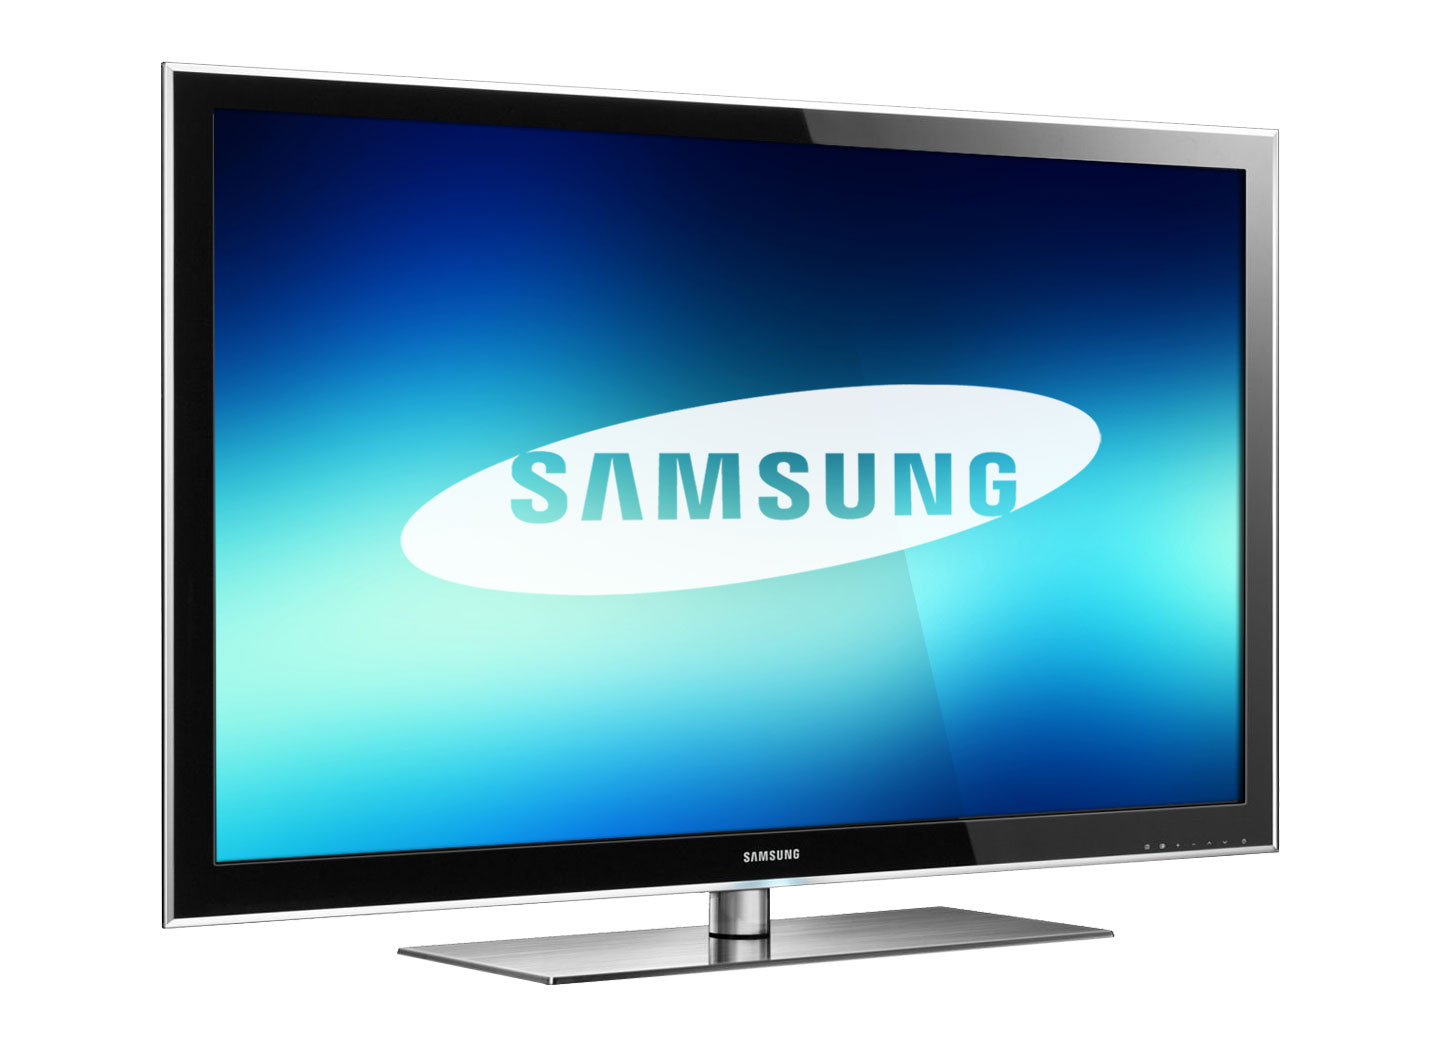 samsung 40 eh5000 full hd led tv clickbd. Black Bedroom Furniture Sets. Home Design Ideas